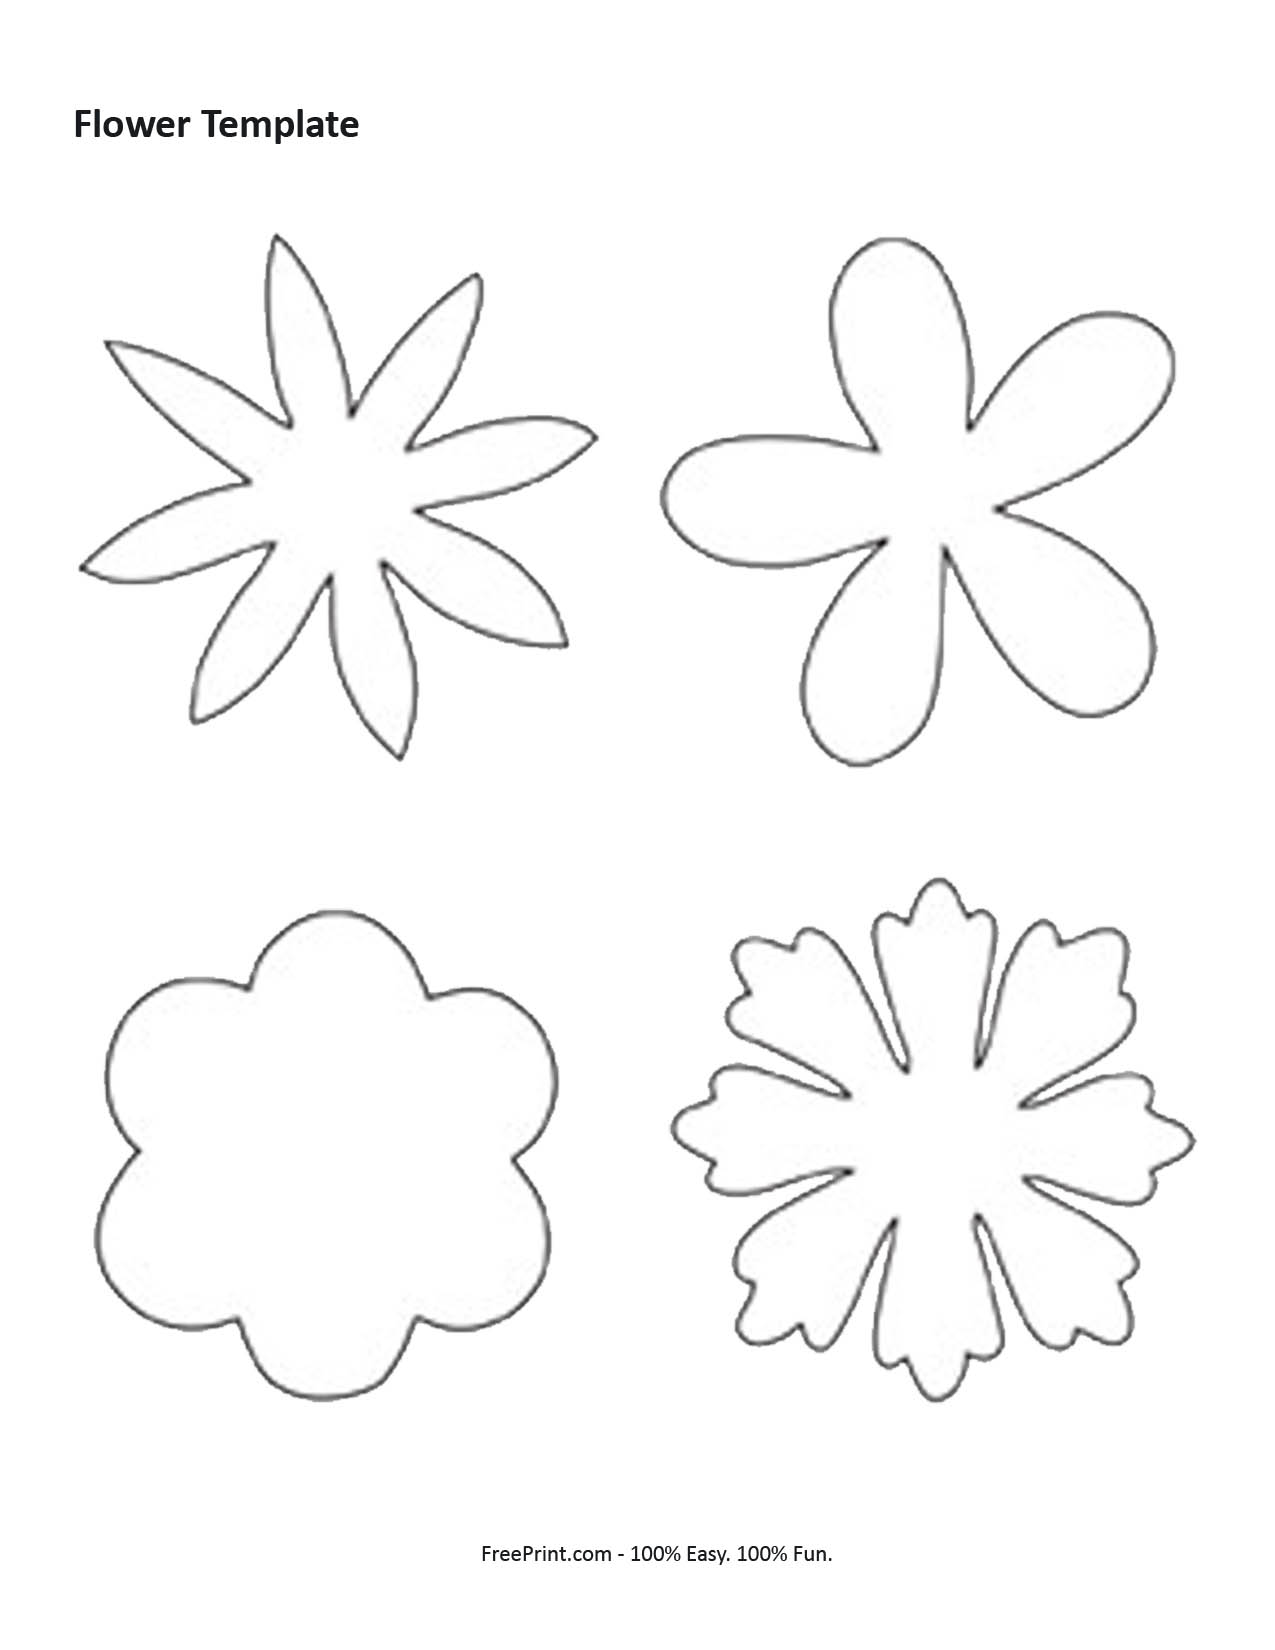 Print - flower shaped template